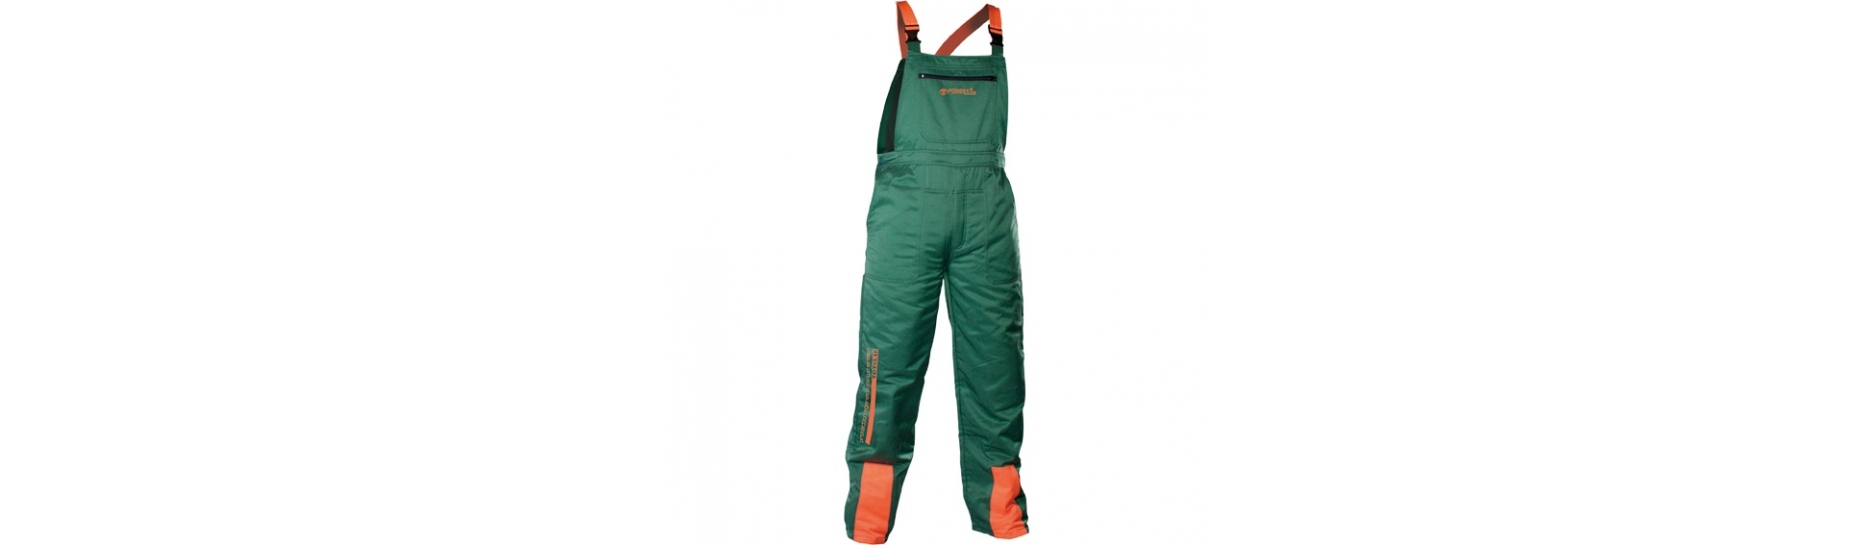 Ropa forestal